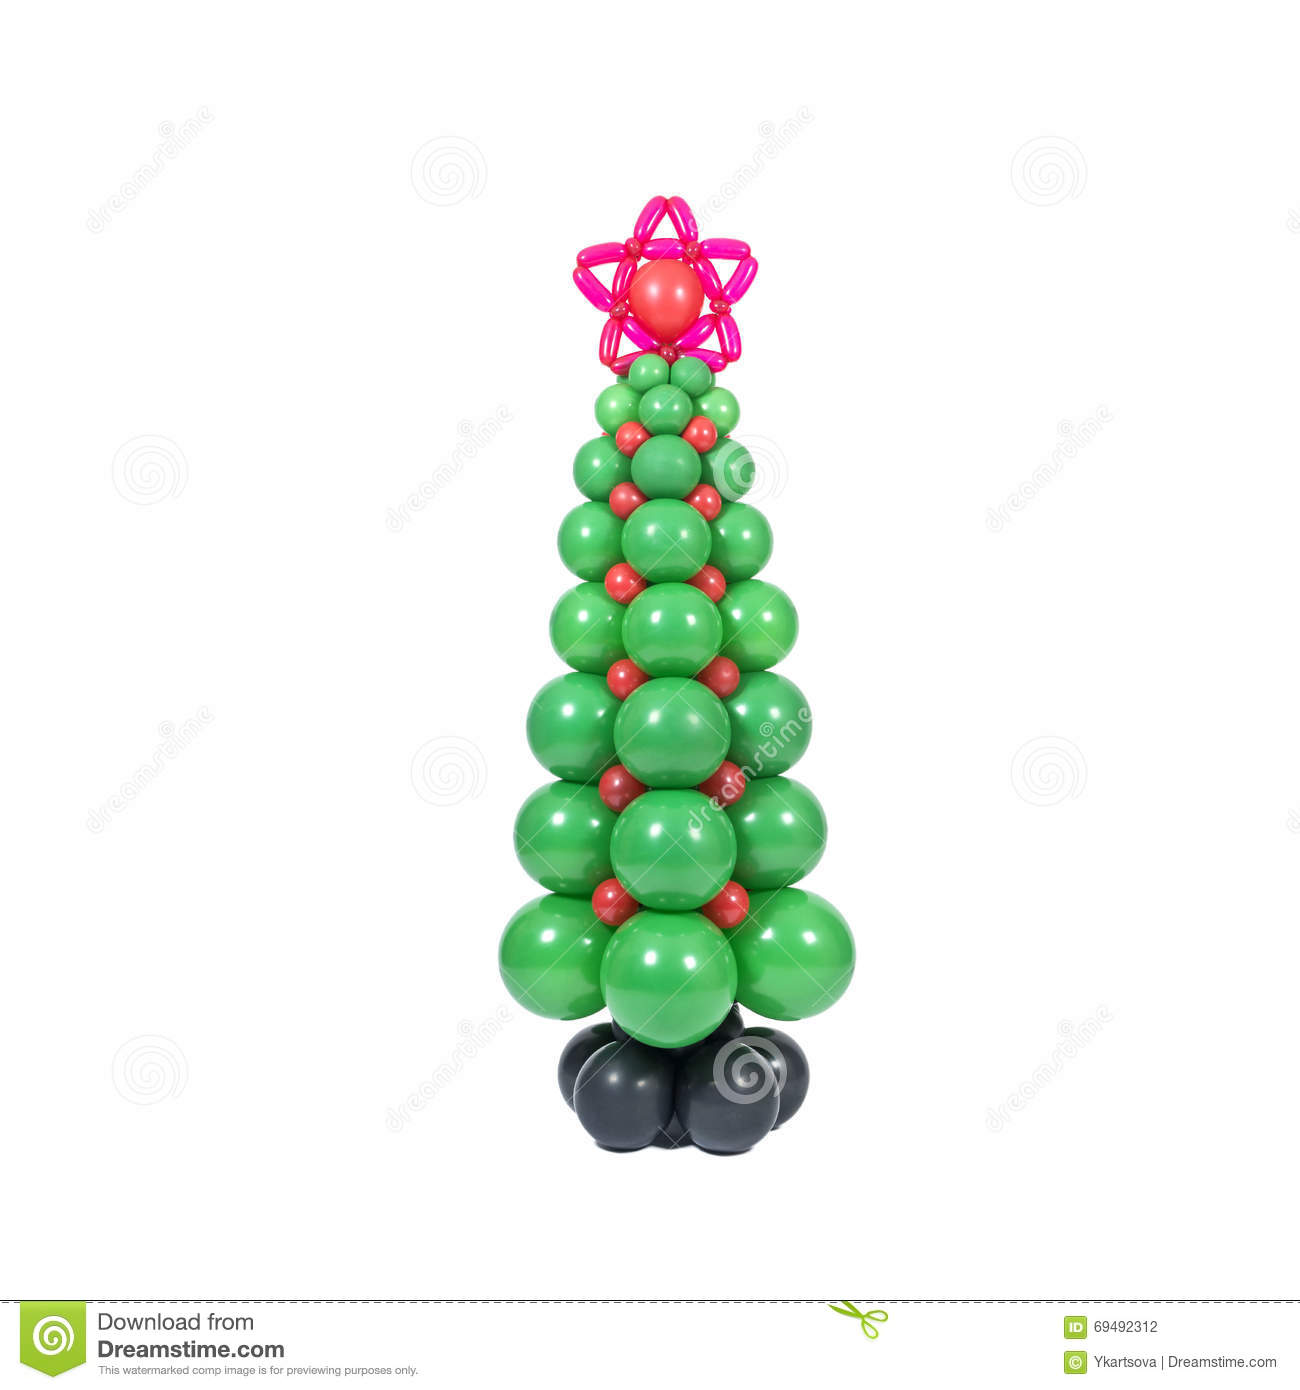 Christmas Tree Balloon.Christmas Tree From Balloons Stock Photo Image Of Bauble